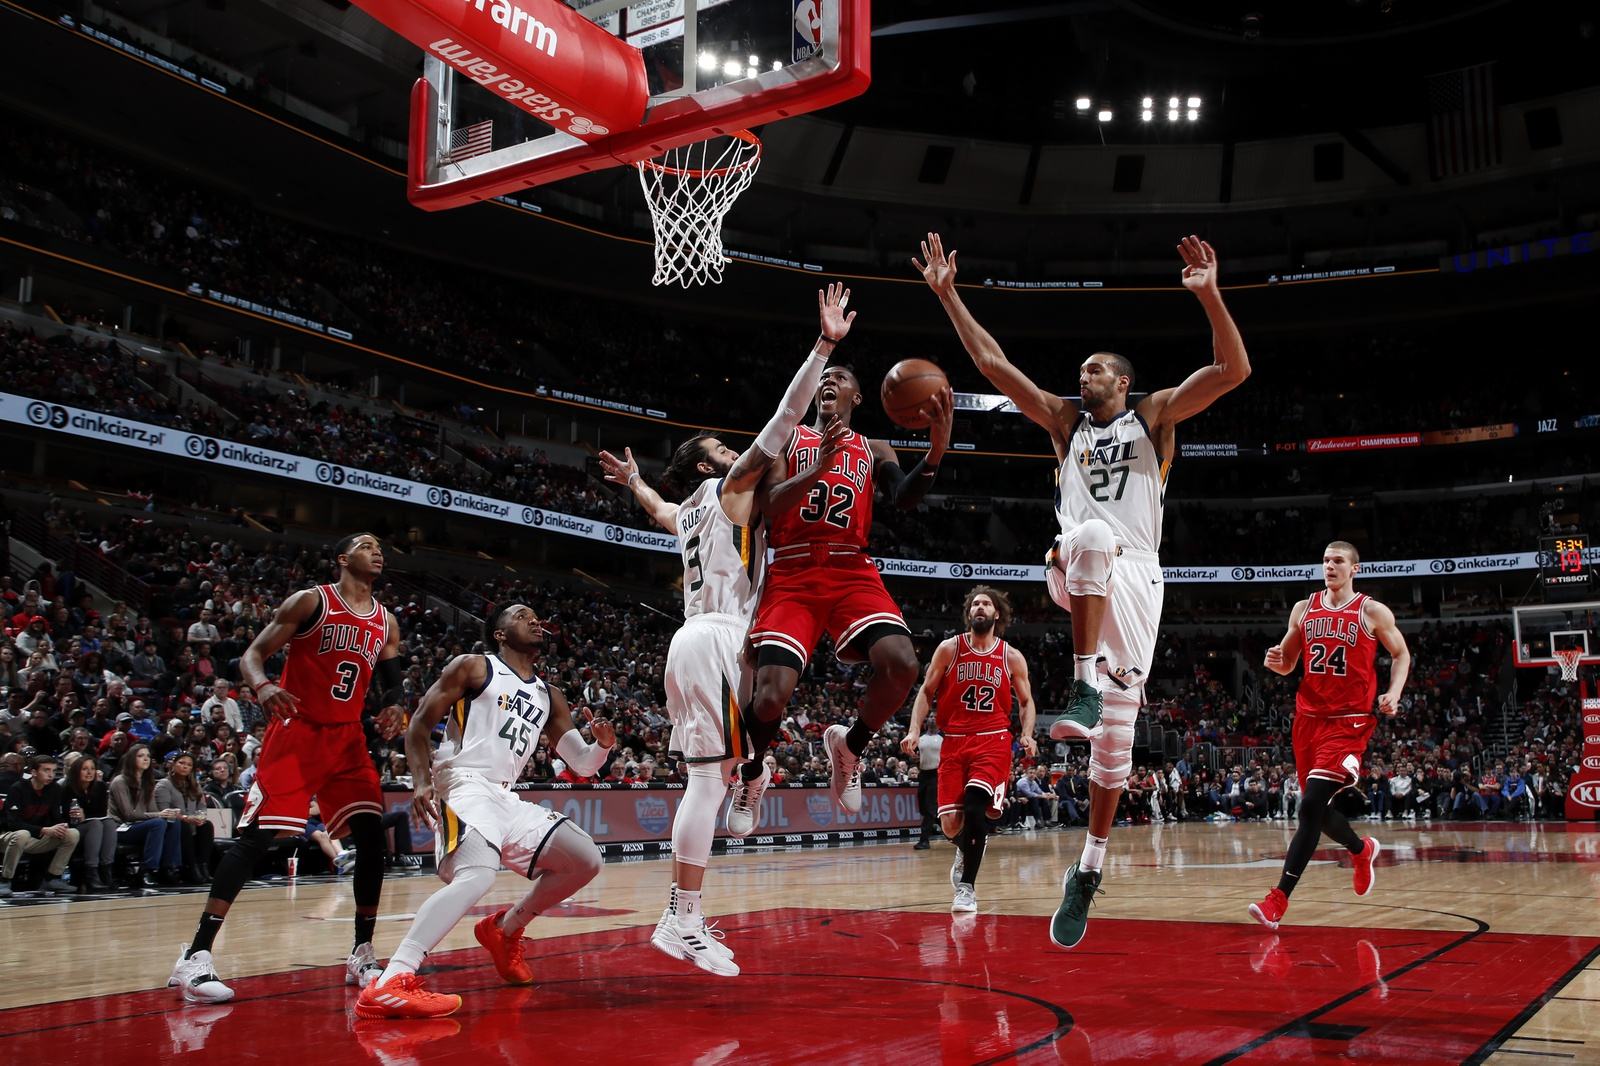 Kris Dunn #32 of the Chicago Bulls shoots the ball against the Utah Jazz on March 23, 2019 at United Center in Chicago, Illinois.